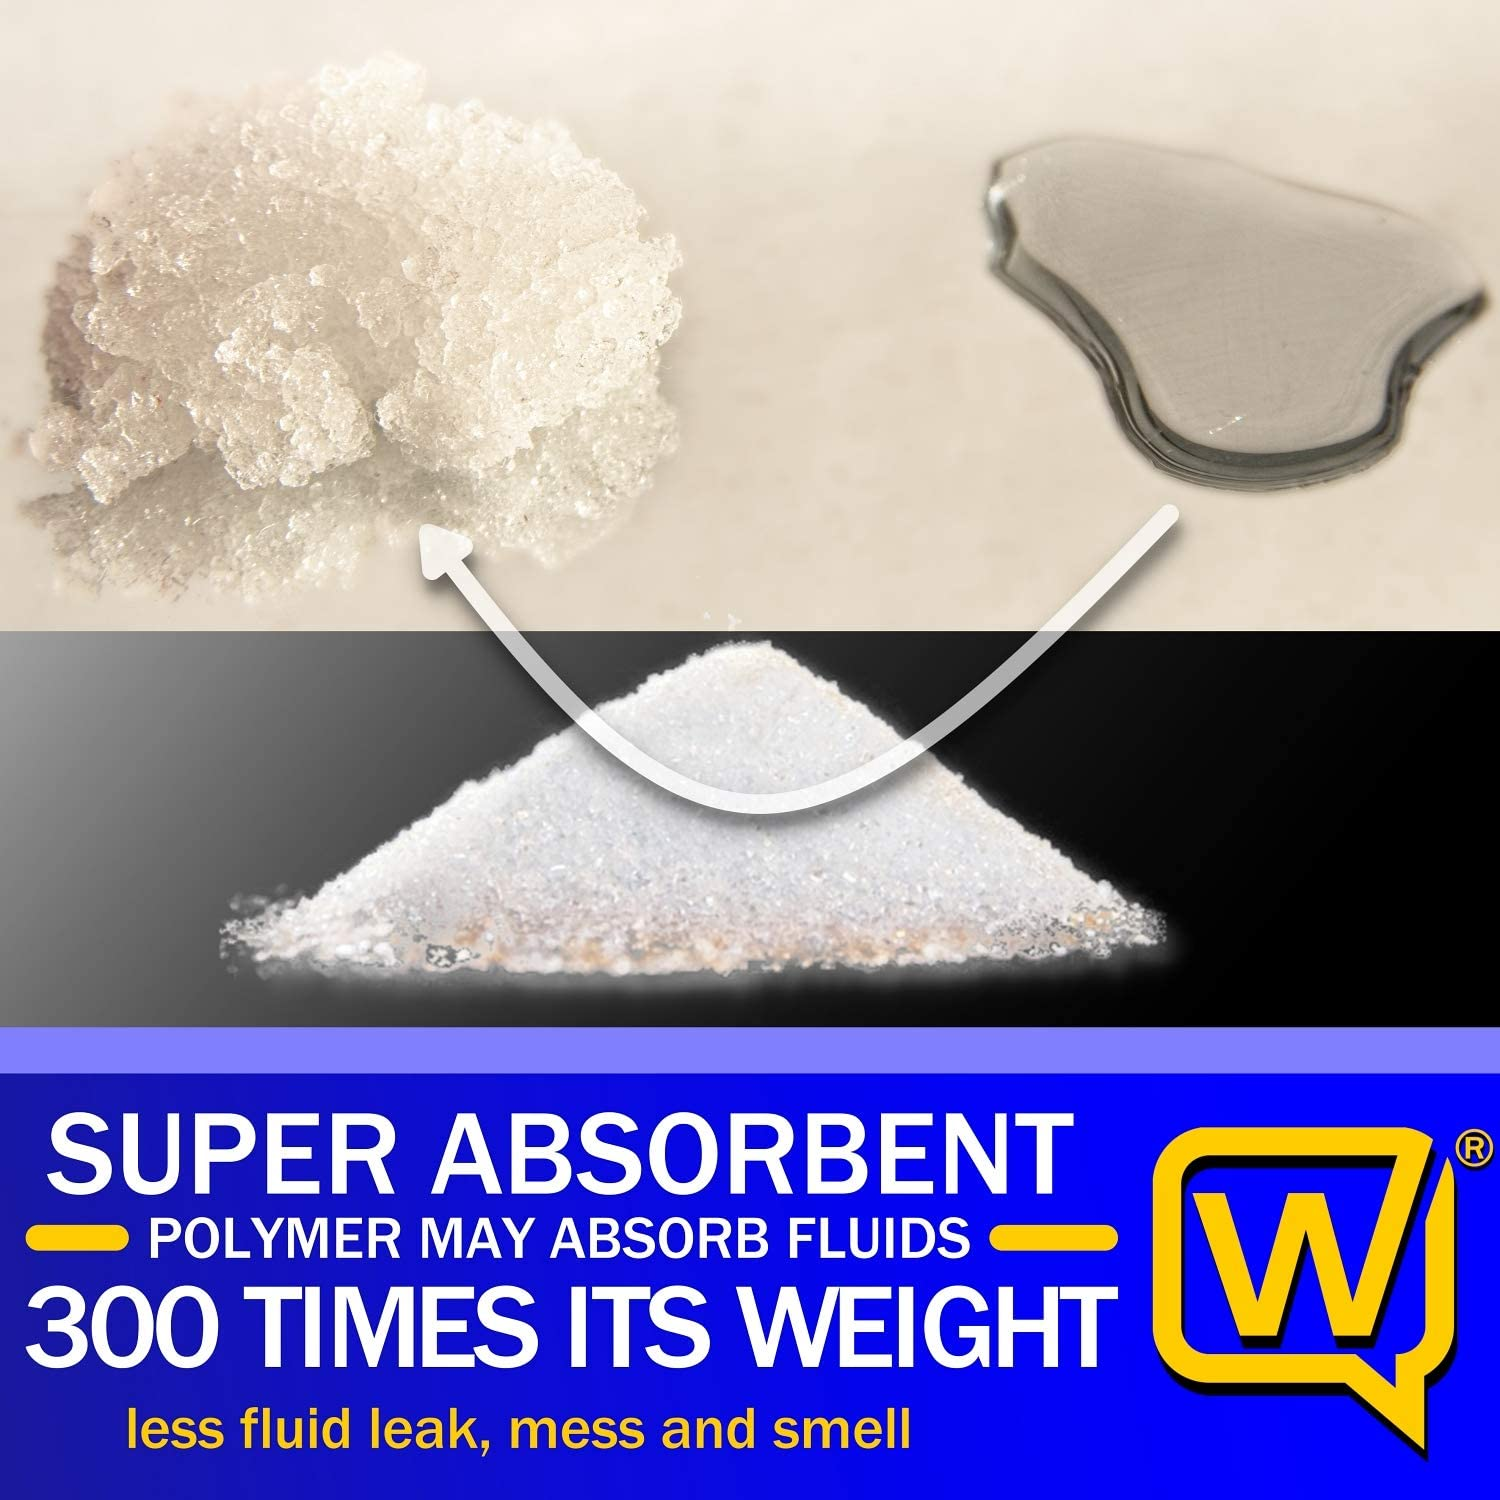 Wirta Home Super Absorbent Pads for Bedside Commode Liners, 50 Count - Without Odors You Sleep Well - Bedside Commode Liners Disposable is Easy to Cleanup When Liquids are Under Control: Health & Personal Care